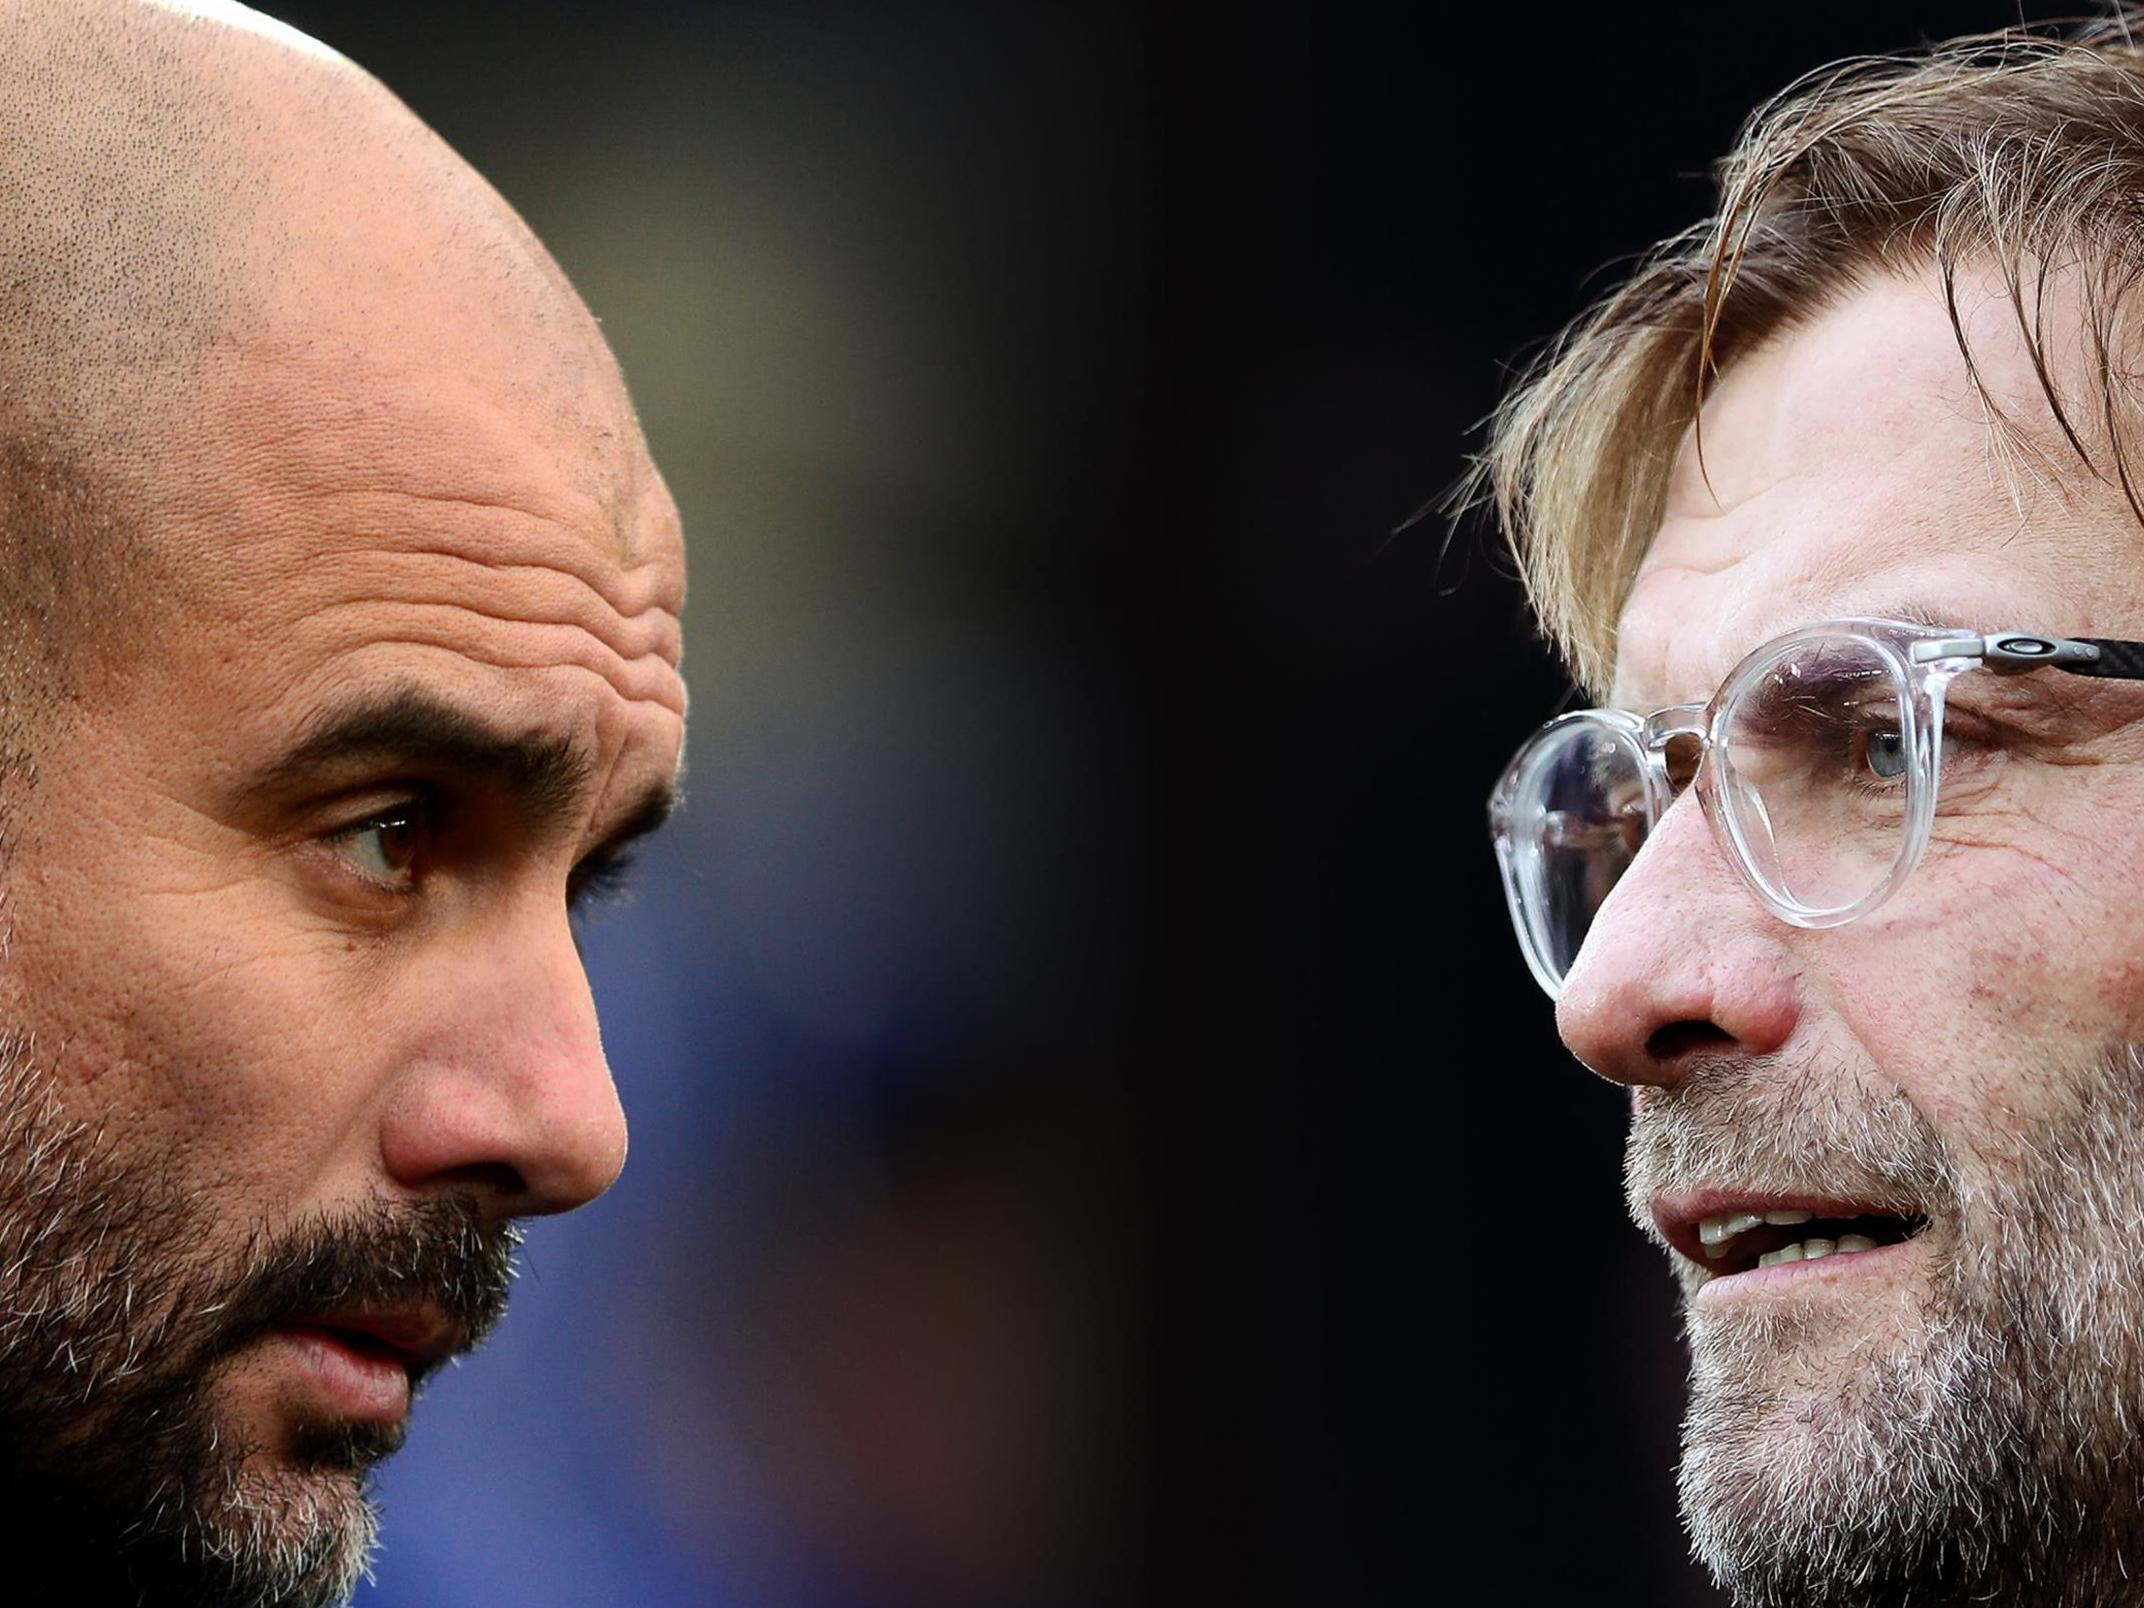 Liverpool and Manchester City: Sheikhs, scouting and 'spying' – the anatomy of a very modern rivalry